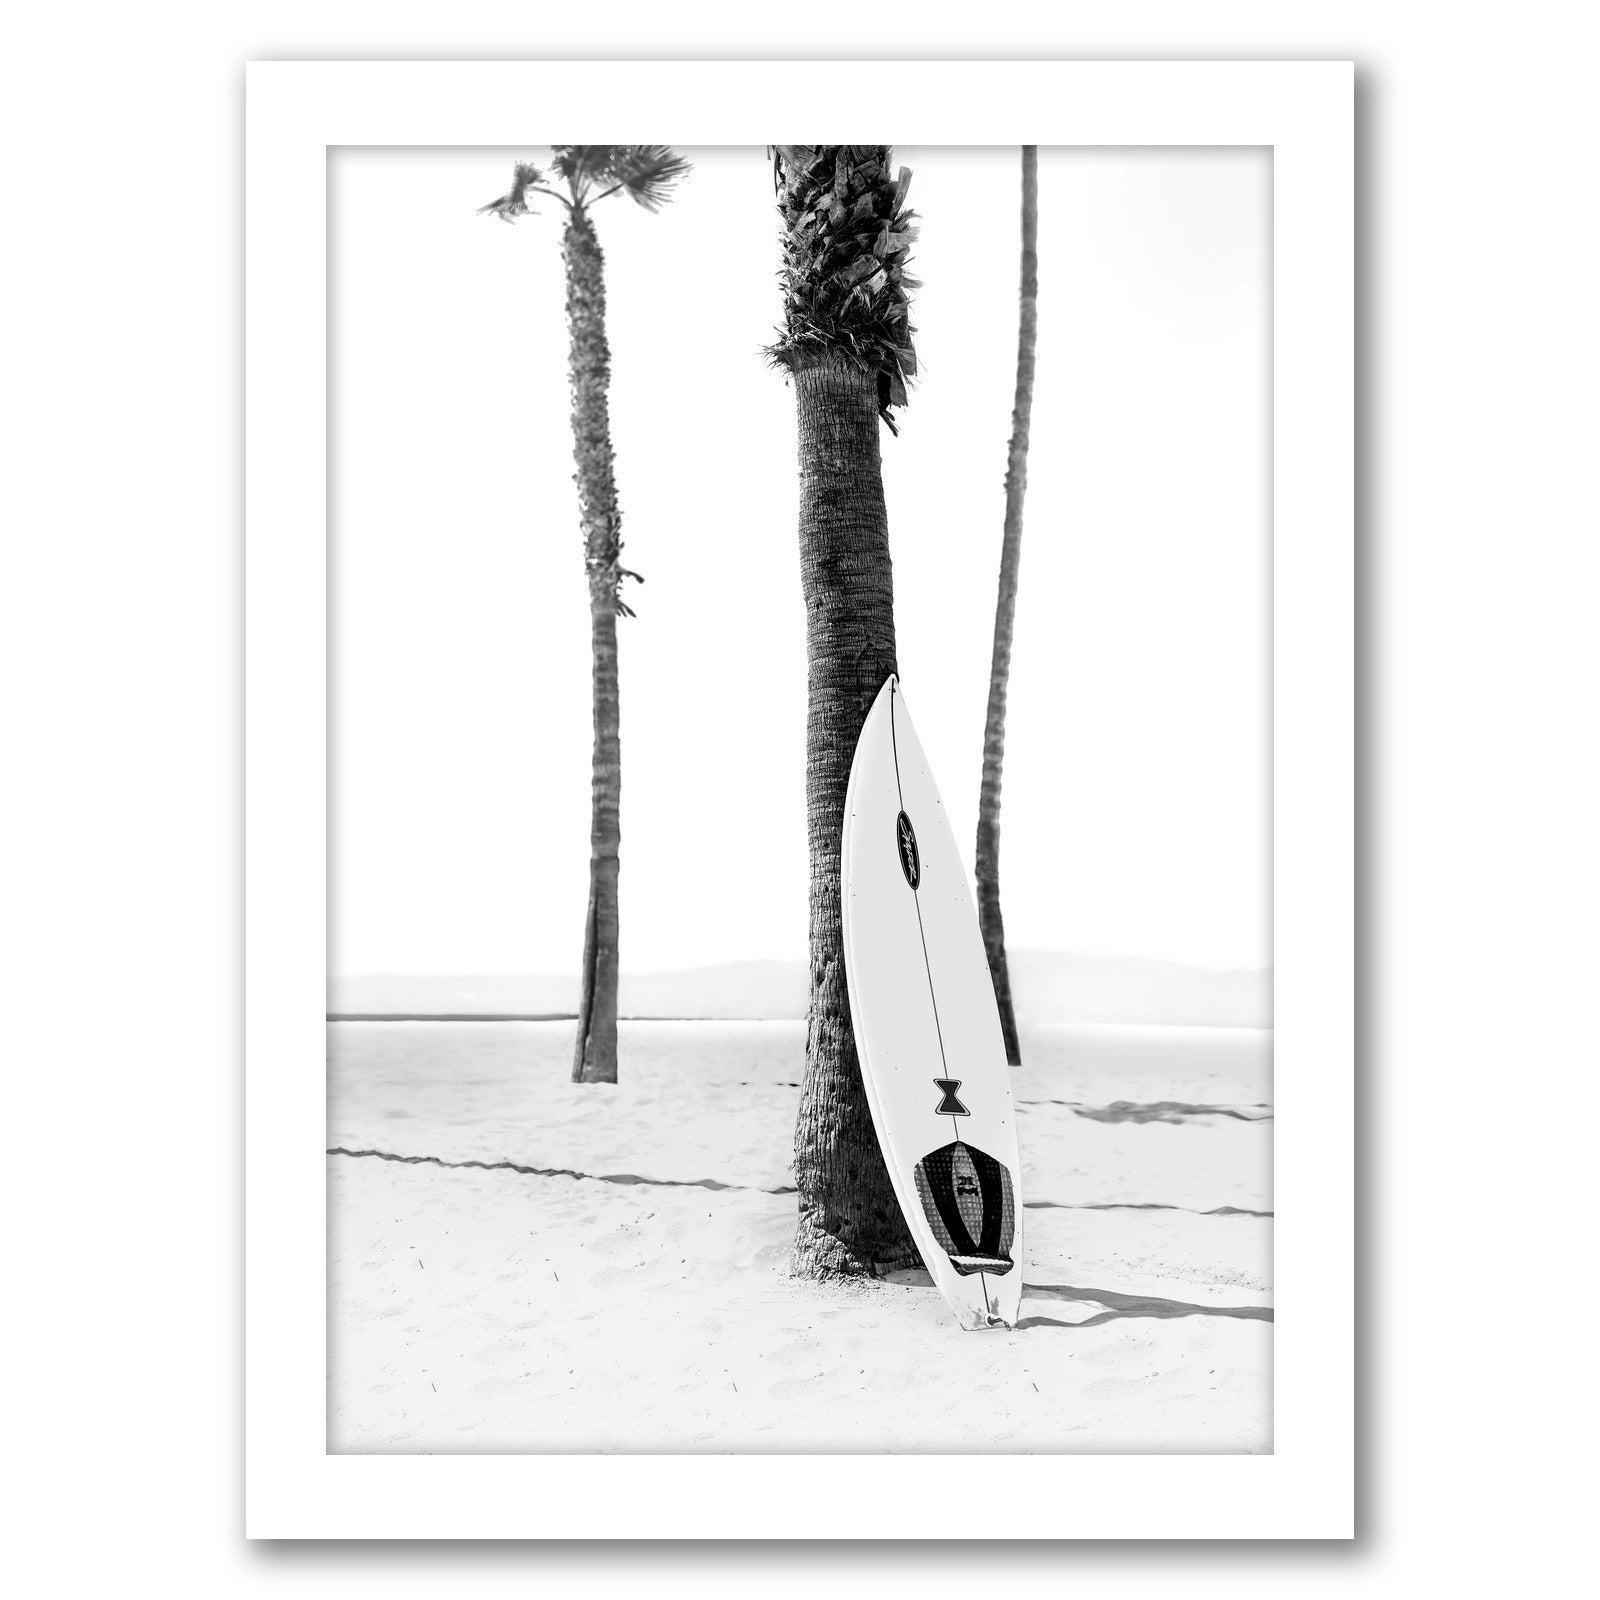 Summer Beach Photo by Tanya Shumkina - White Framed Print - Wall Art - Americanflat